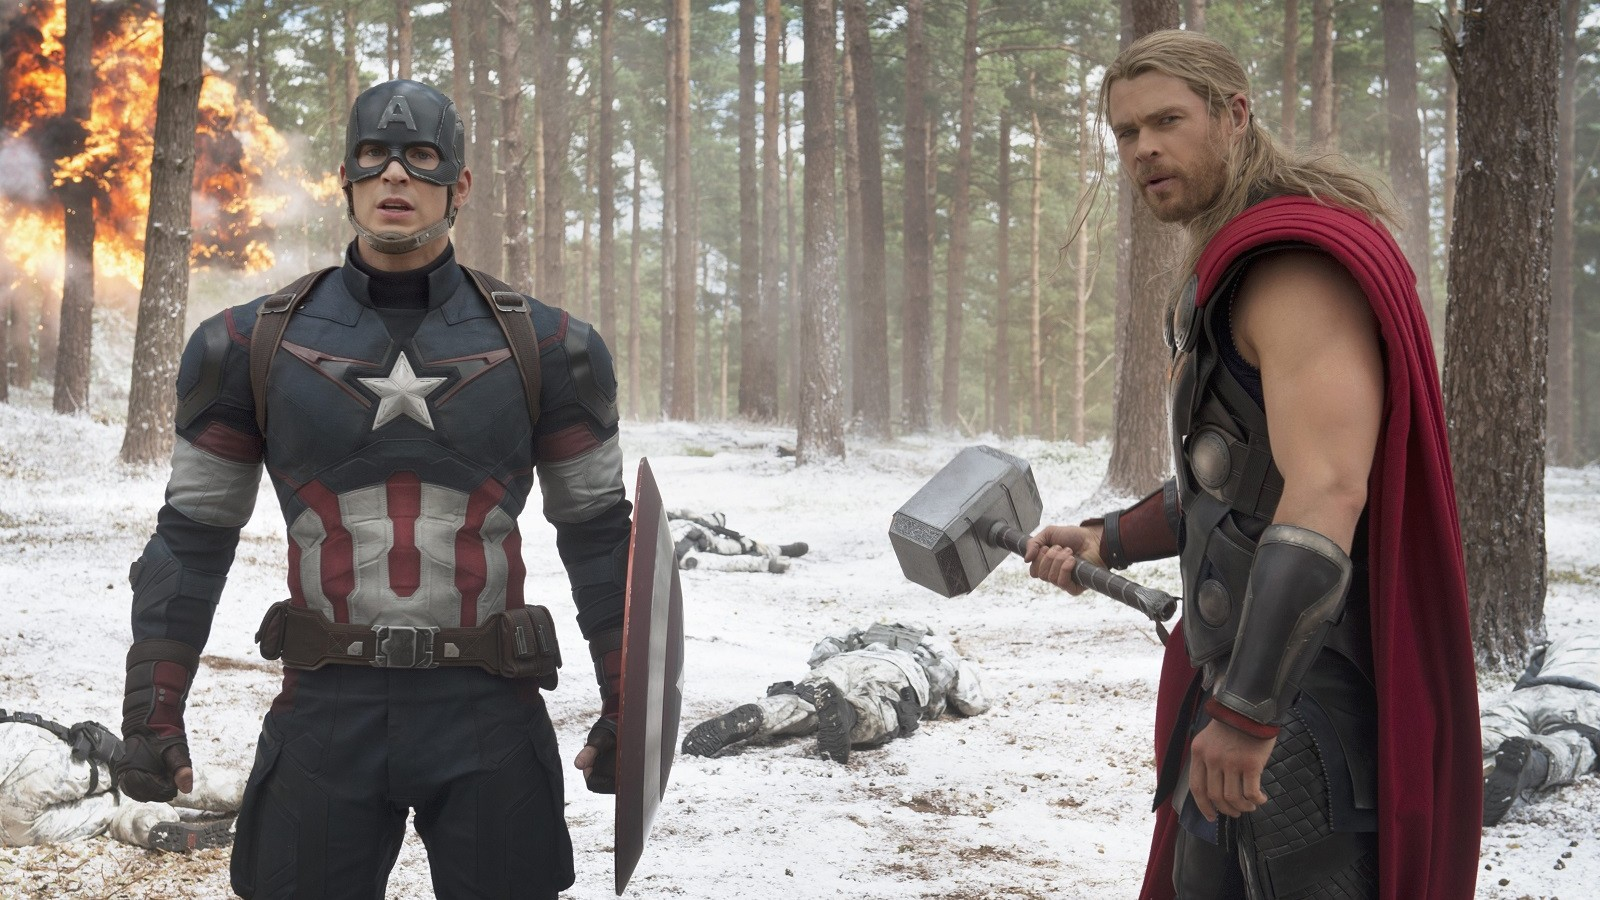 From left to right, Captain America/Steve Rogers (Chris Evans) and Thor (Chris Hemsworth) from 'The Avengers: Age of Ultron.'